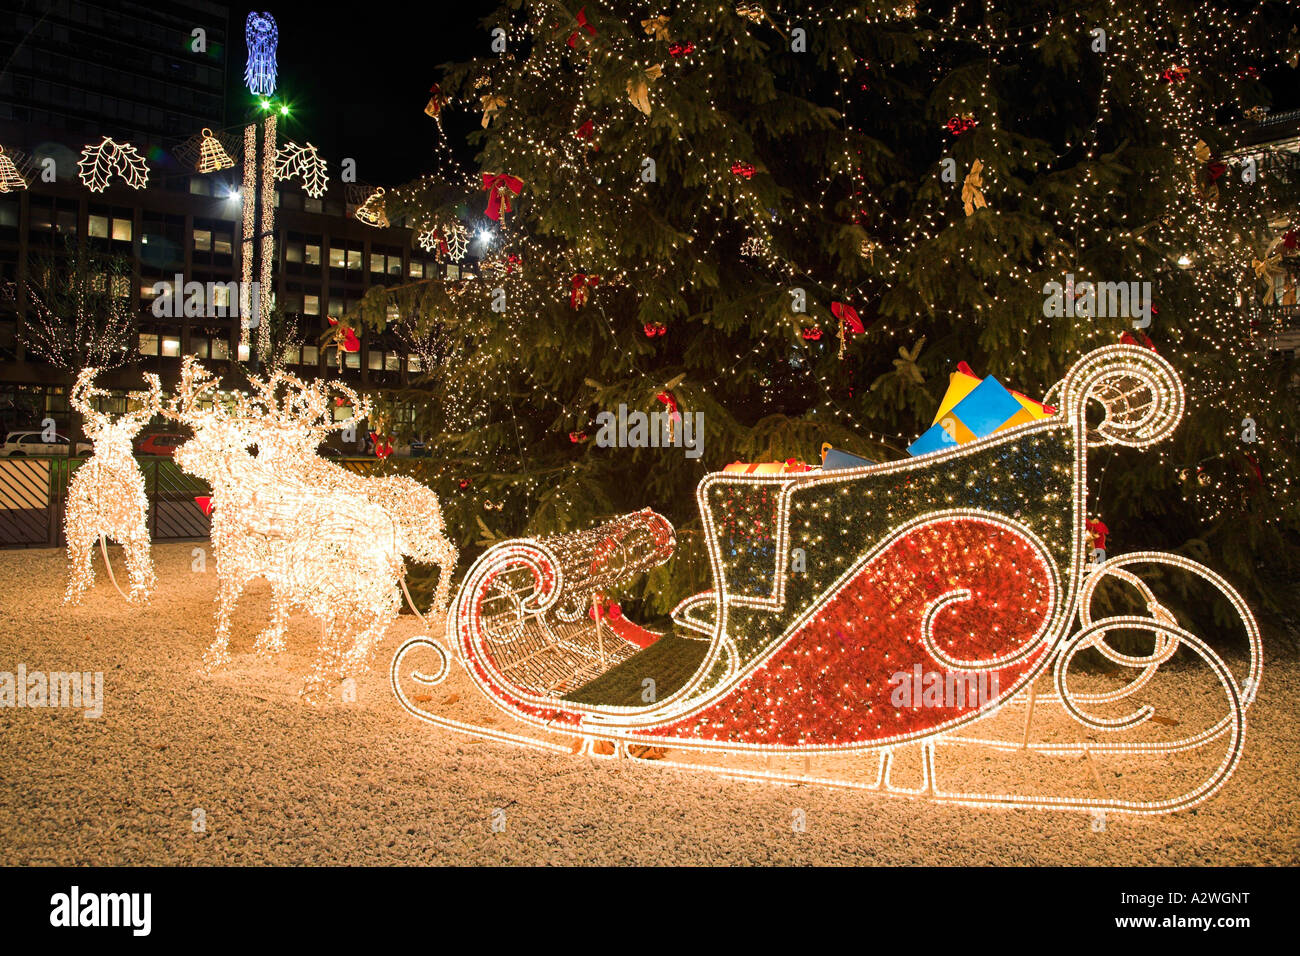 Weihnachtsbeleuchtung Schlitten.Reindeer And Sleigh Christmas Lights In George Square Glasgow Stock